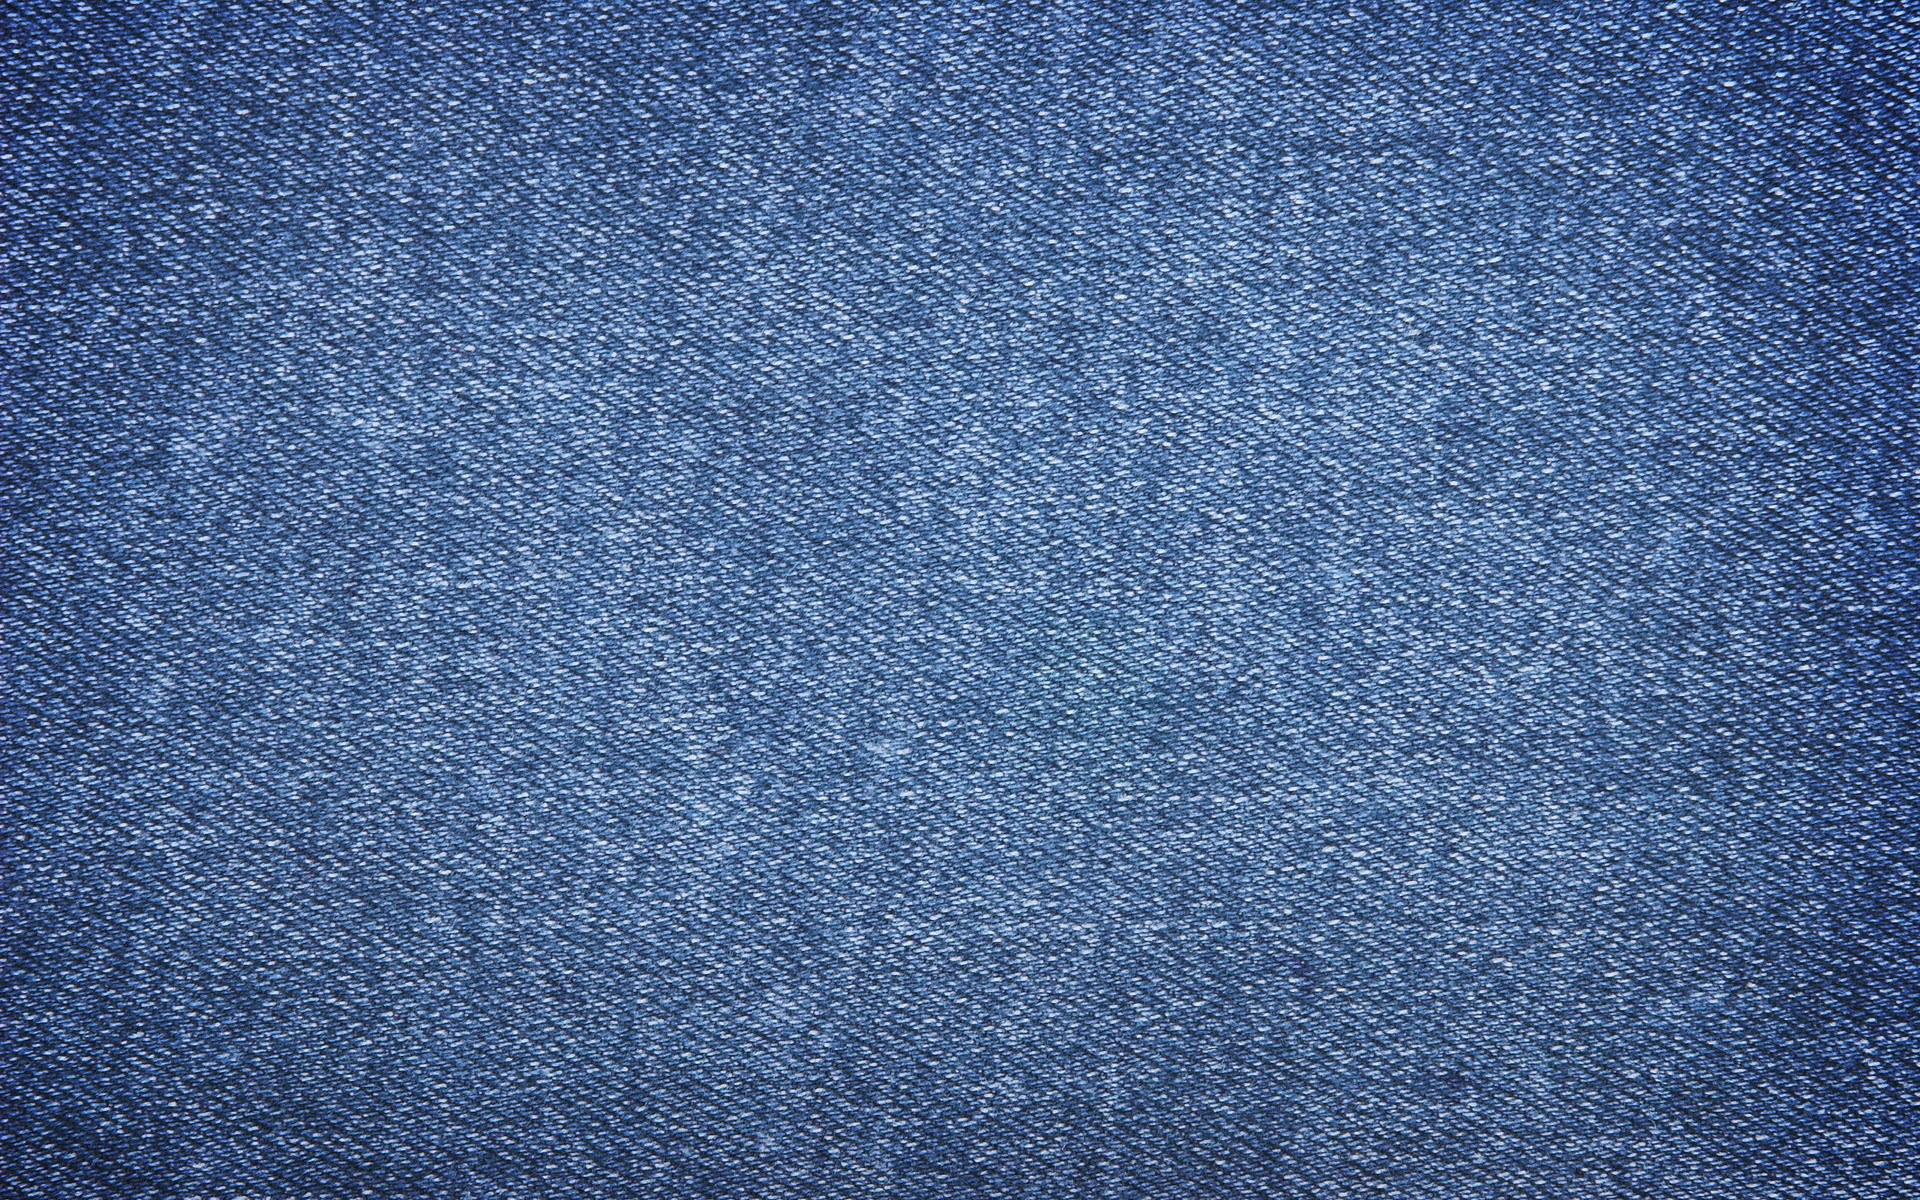 Light Denim Fabric